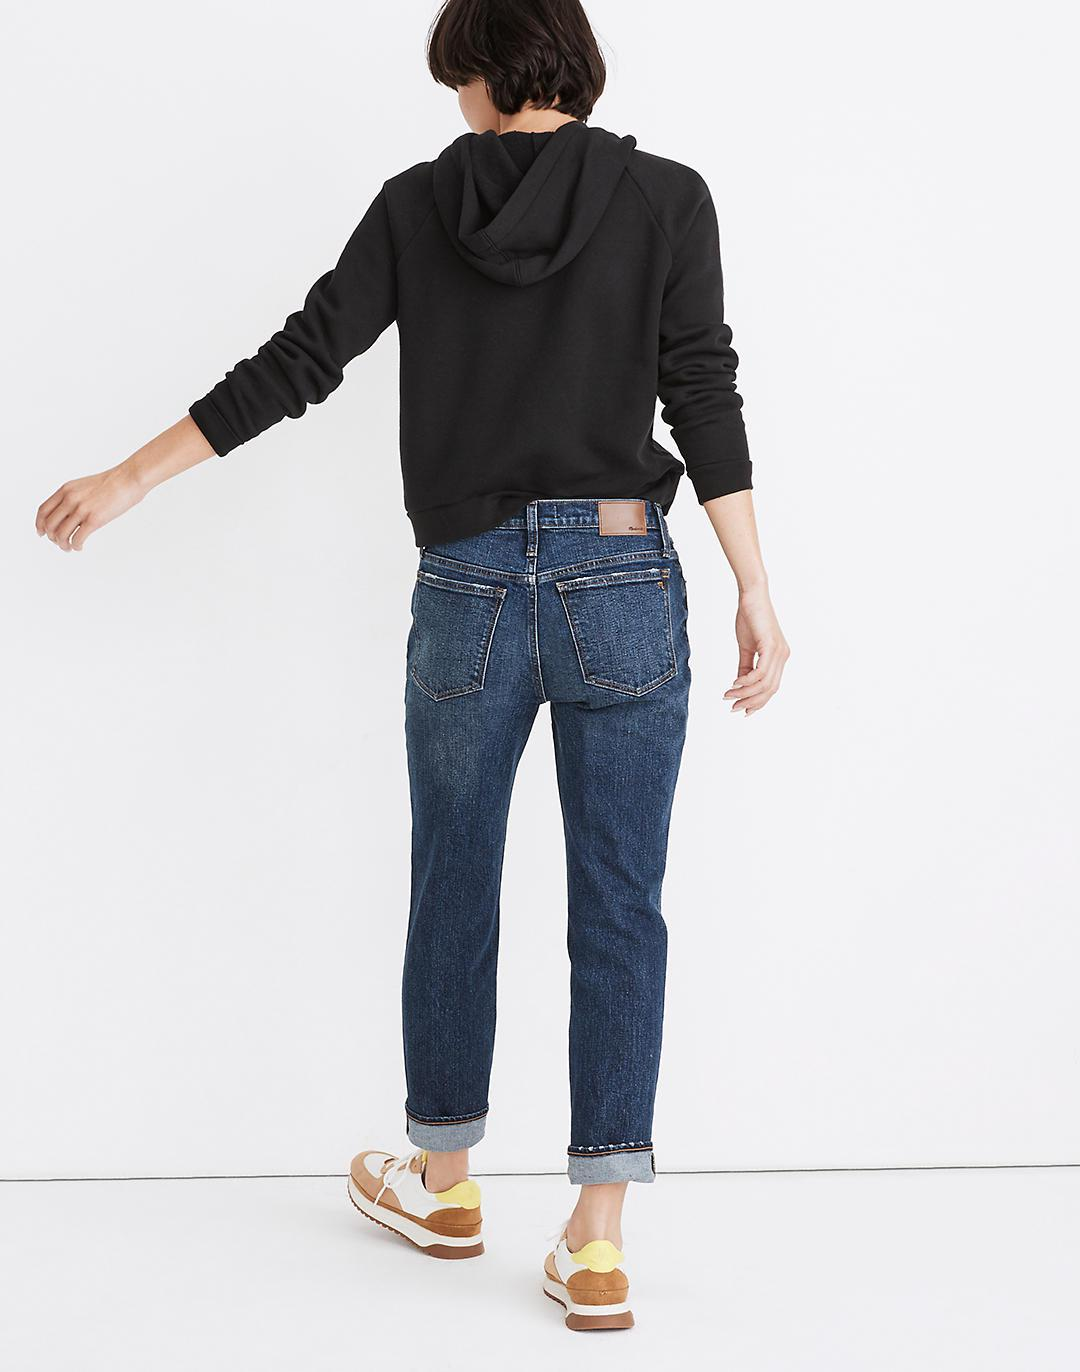 Tomboy Straight Jeans in Chaseley Wash 2